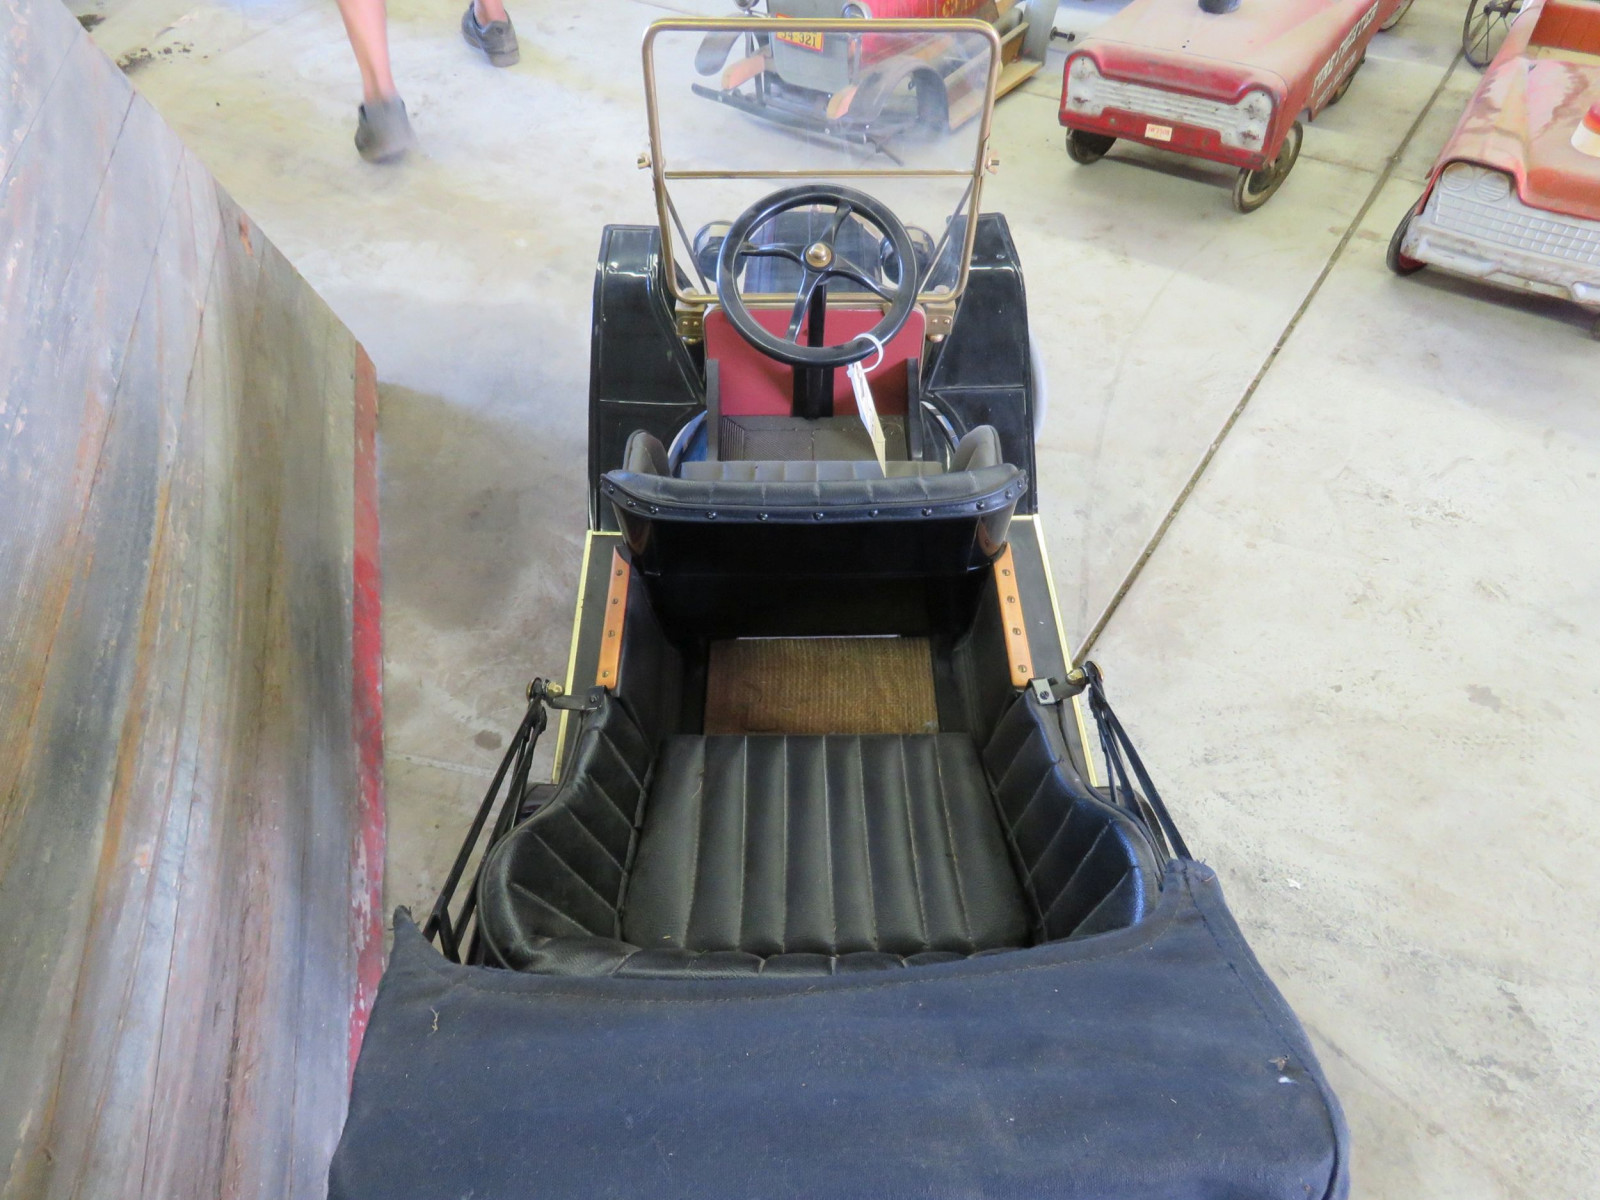 Model T Touring Car Pedal Car - Image 7